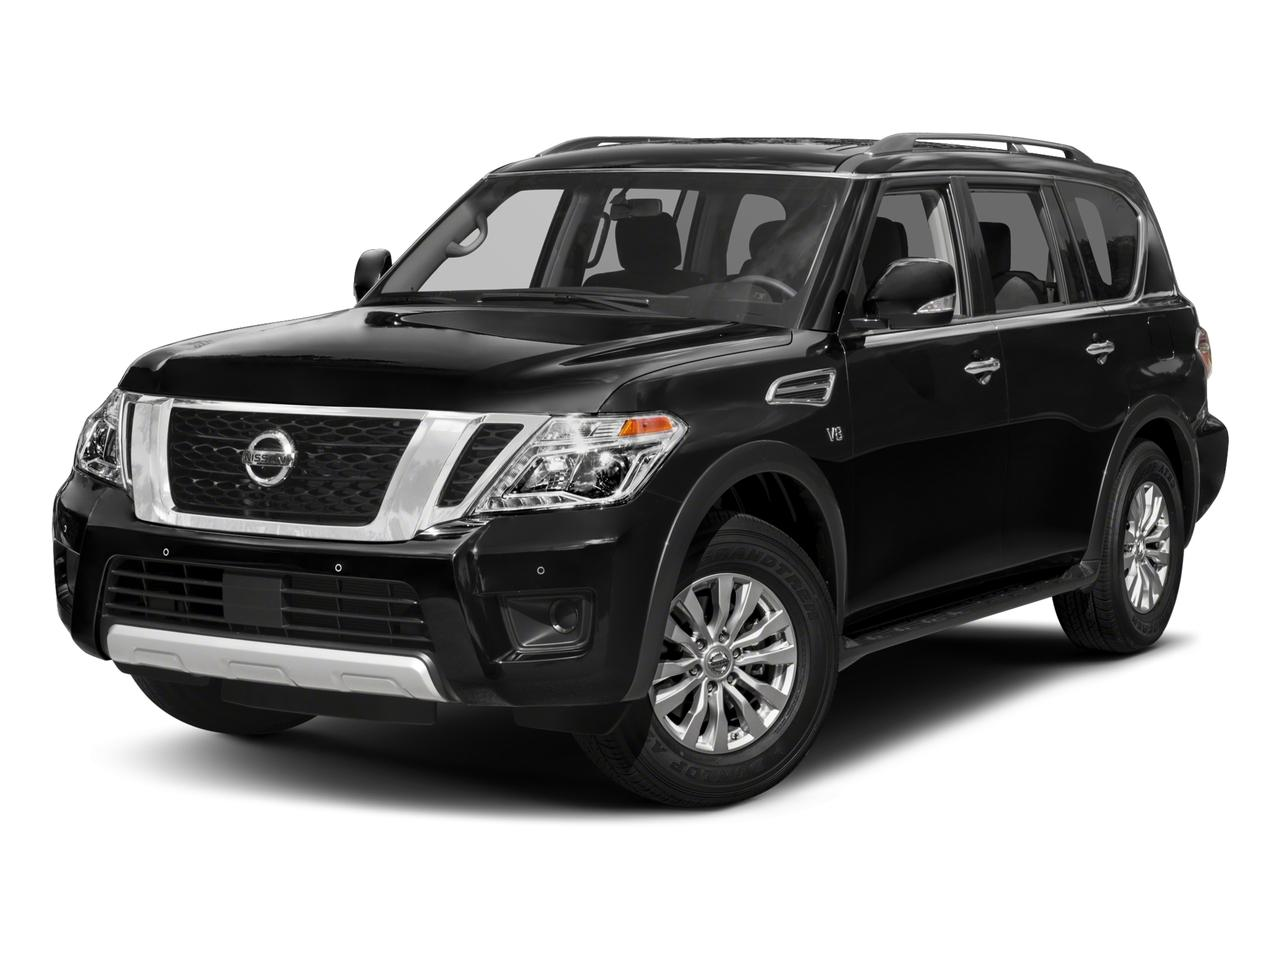 2017 Nissan Armada Vehicle Photo in Killeen, TX 76541